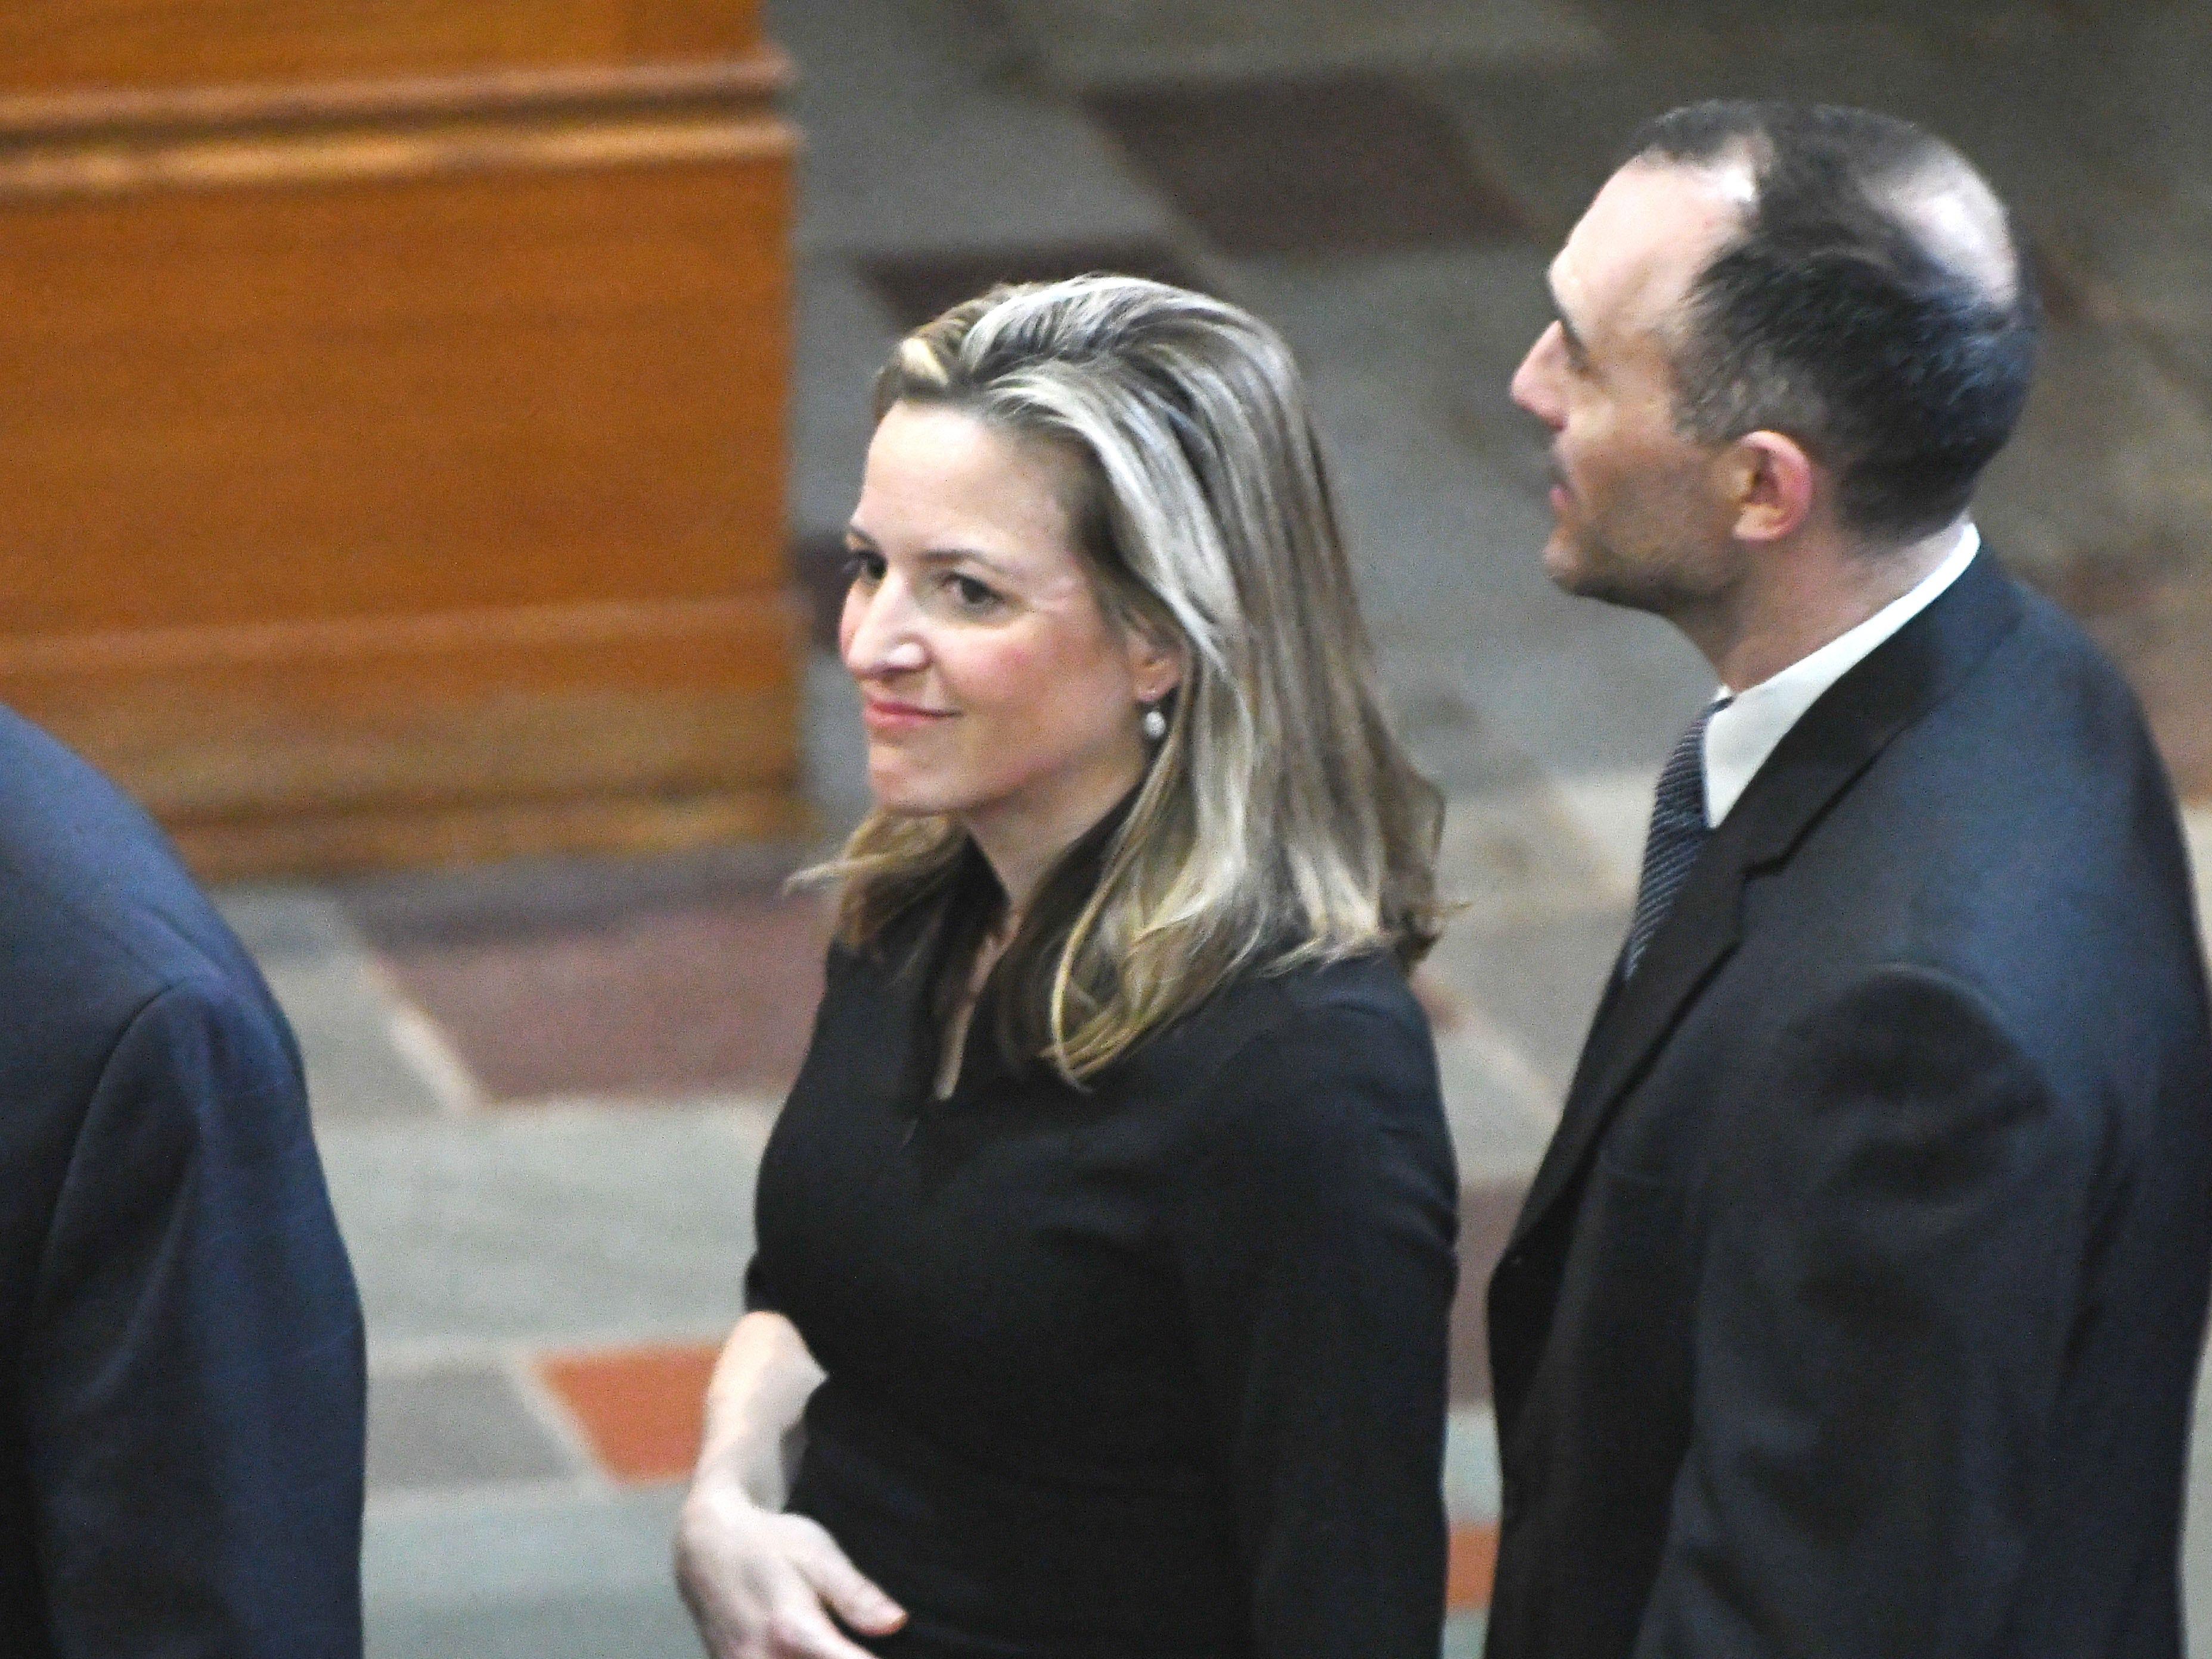 Michigan Secretary of State Jocelyn Benson with husband Ryan Friedrichs during the funeral of Judge Damon J. Keith.